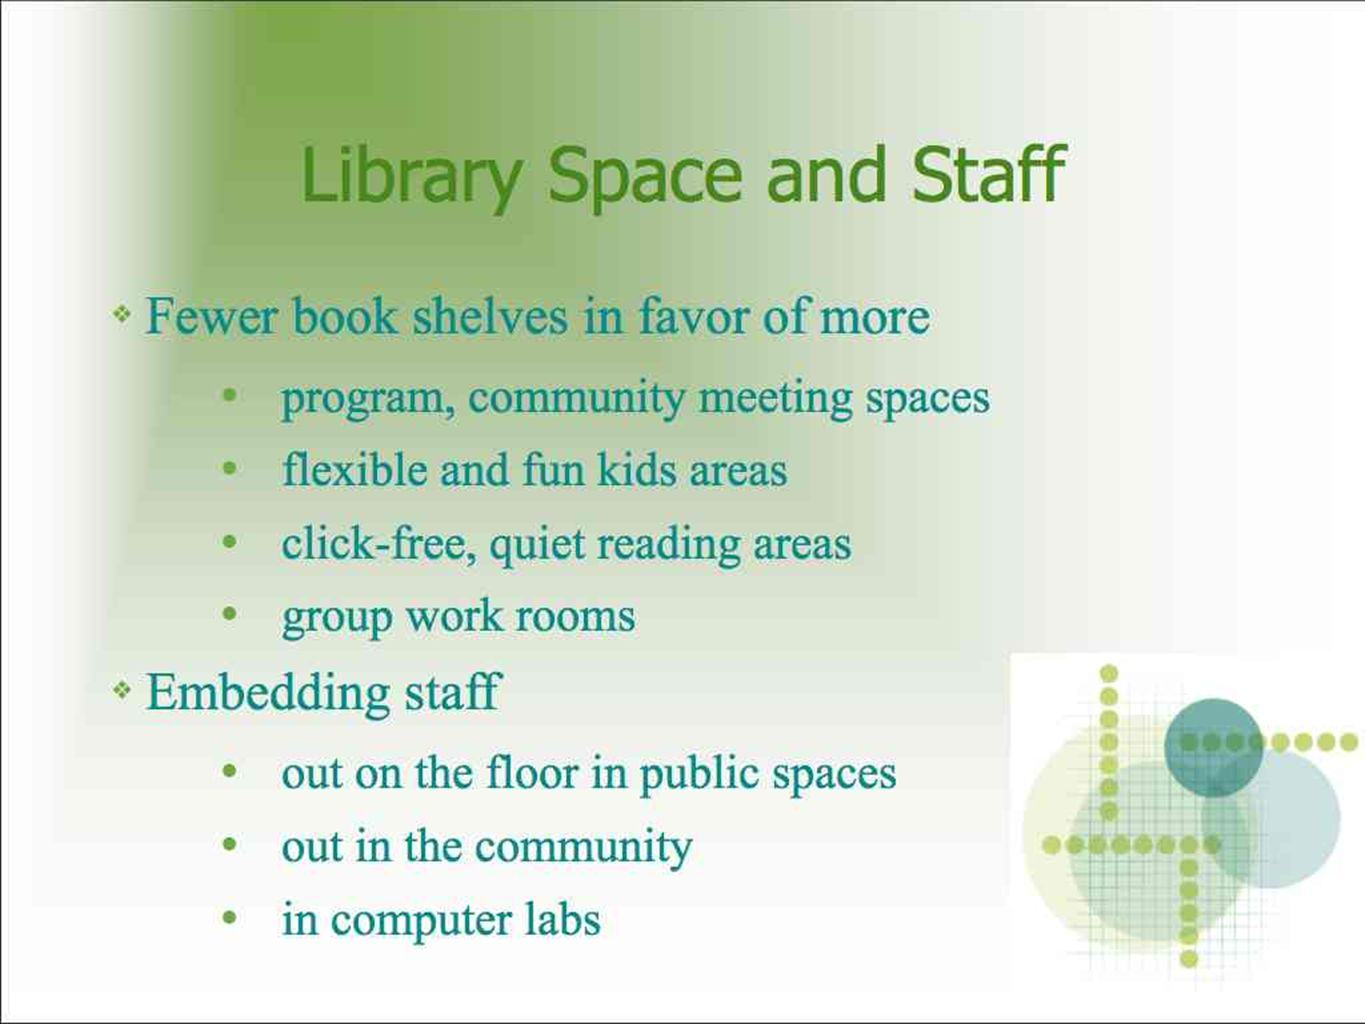 Library Space and Staff Fewer book shelves in favor of more program, community meeting spaces flexible and fun kids areas click-free, quiet reading areas group work rooms Embedding staff out on the floor in public spaces out in the community in computer labs